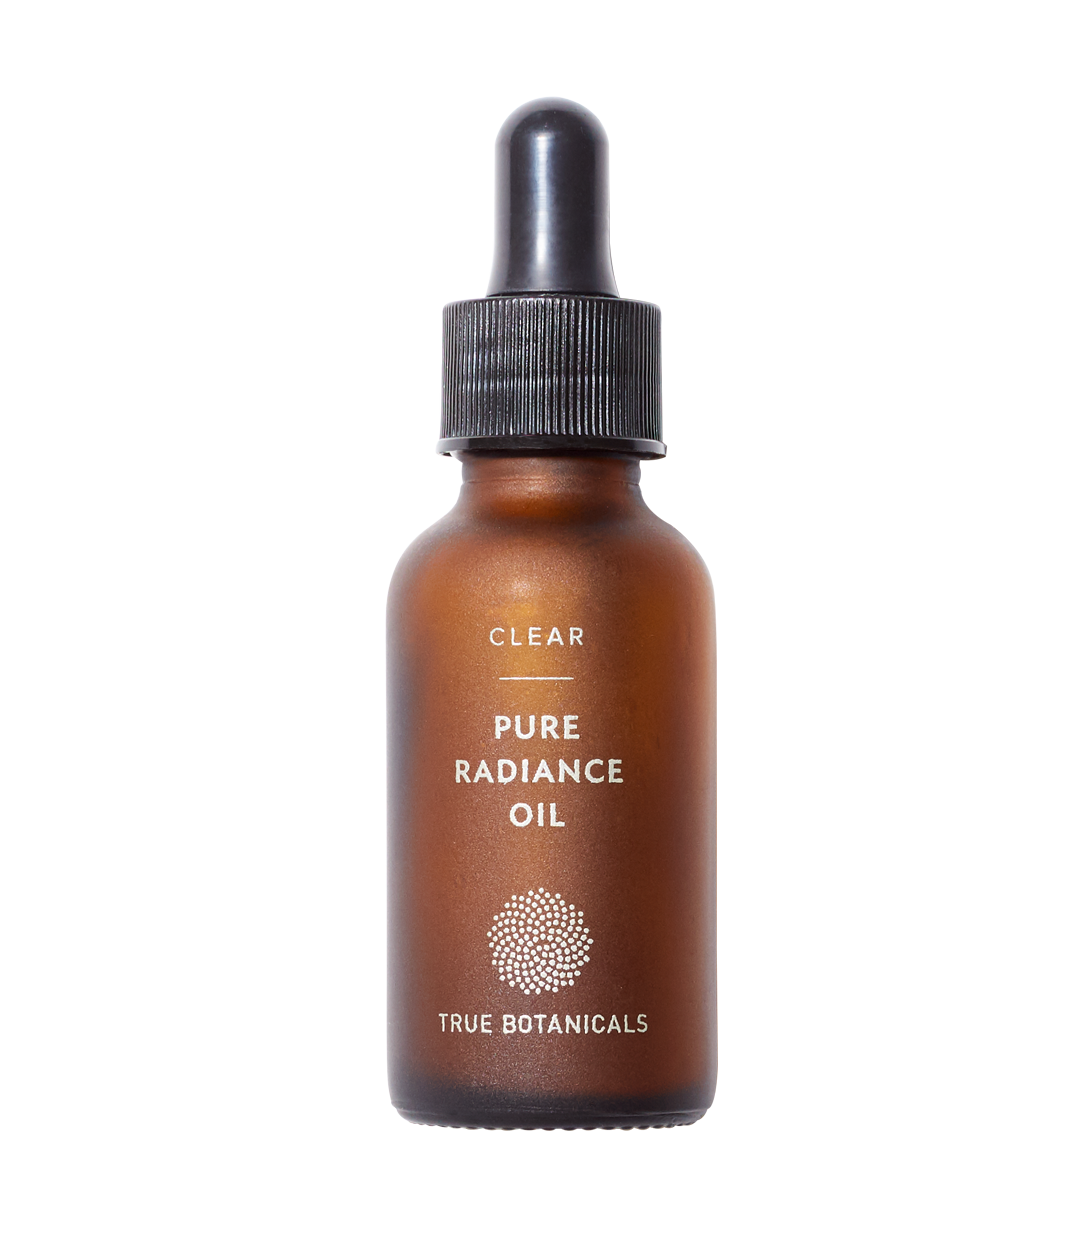 Clear Pure Radiance Oil